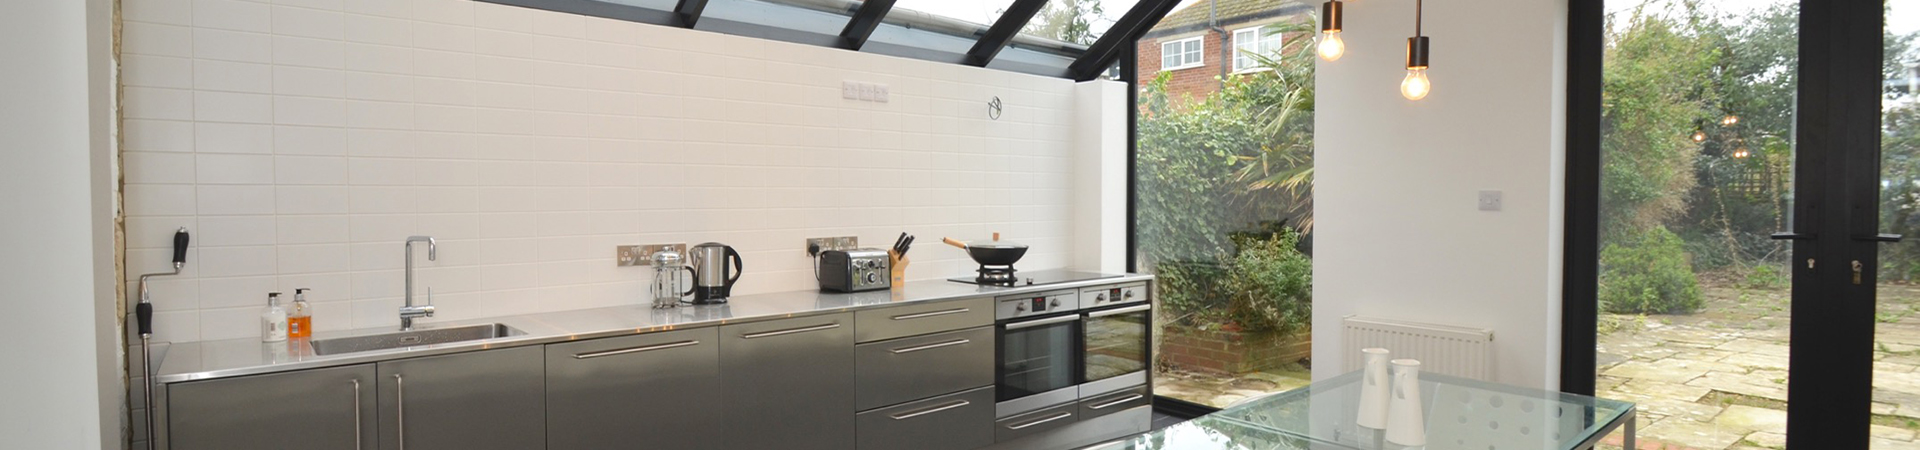 Hybrid Stainless Steel Kitchen Base And Wall Cabinets